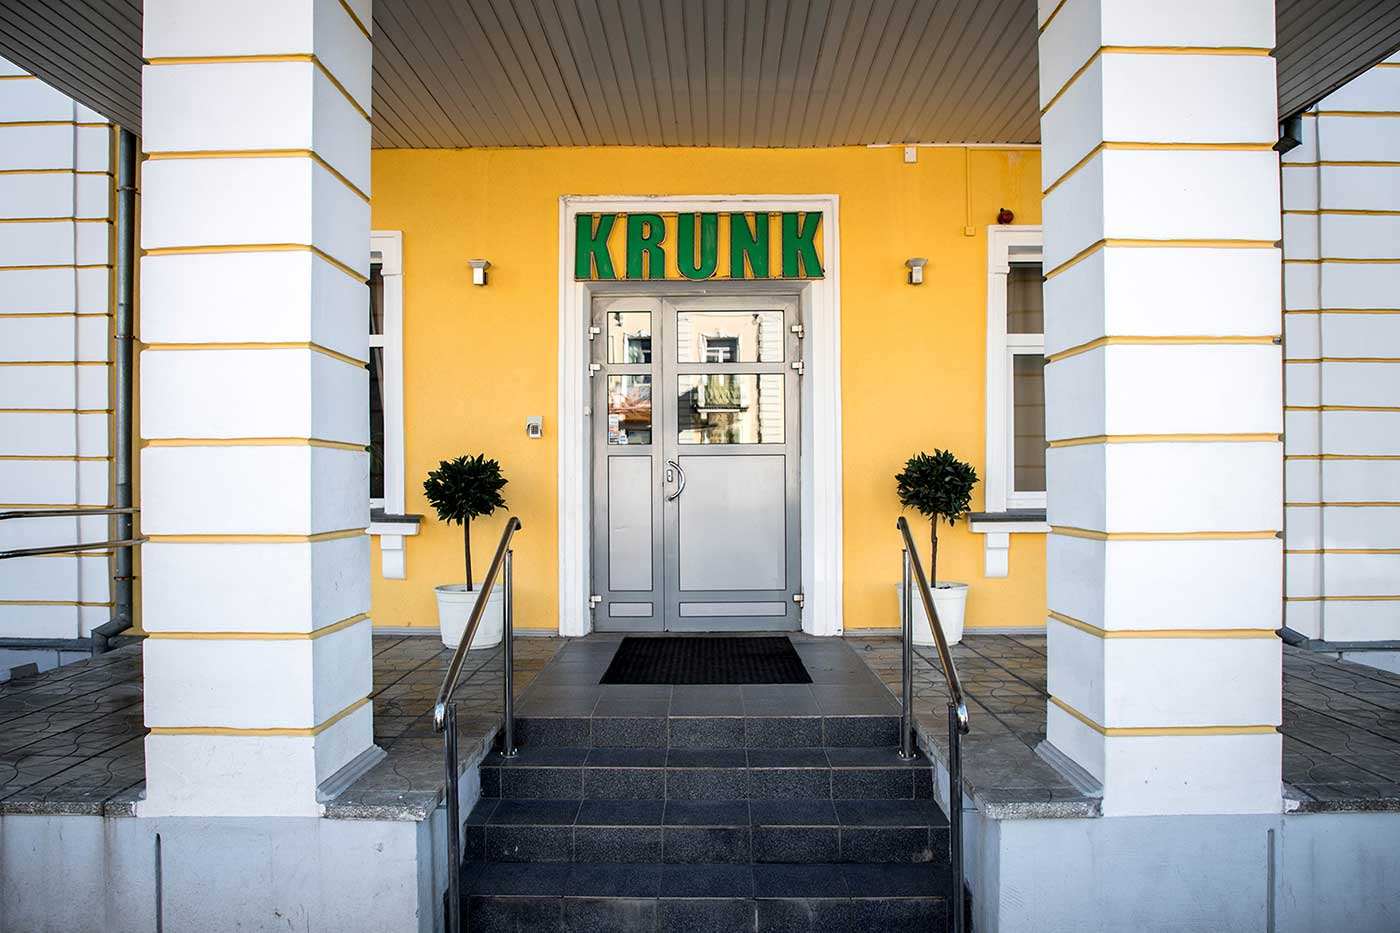 Hotel 'Krunk' on the main avenue of Sillamäe, Estonia.